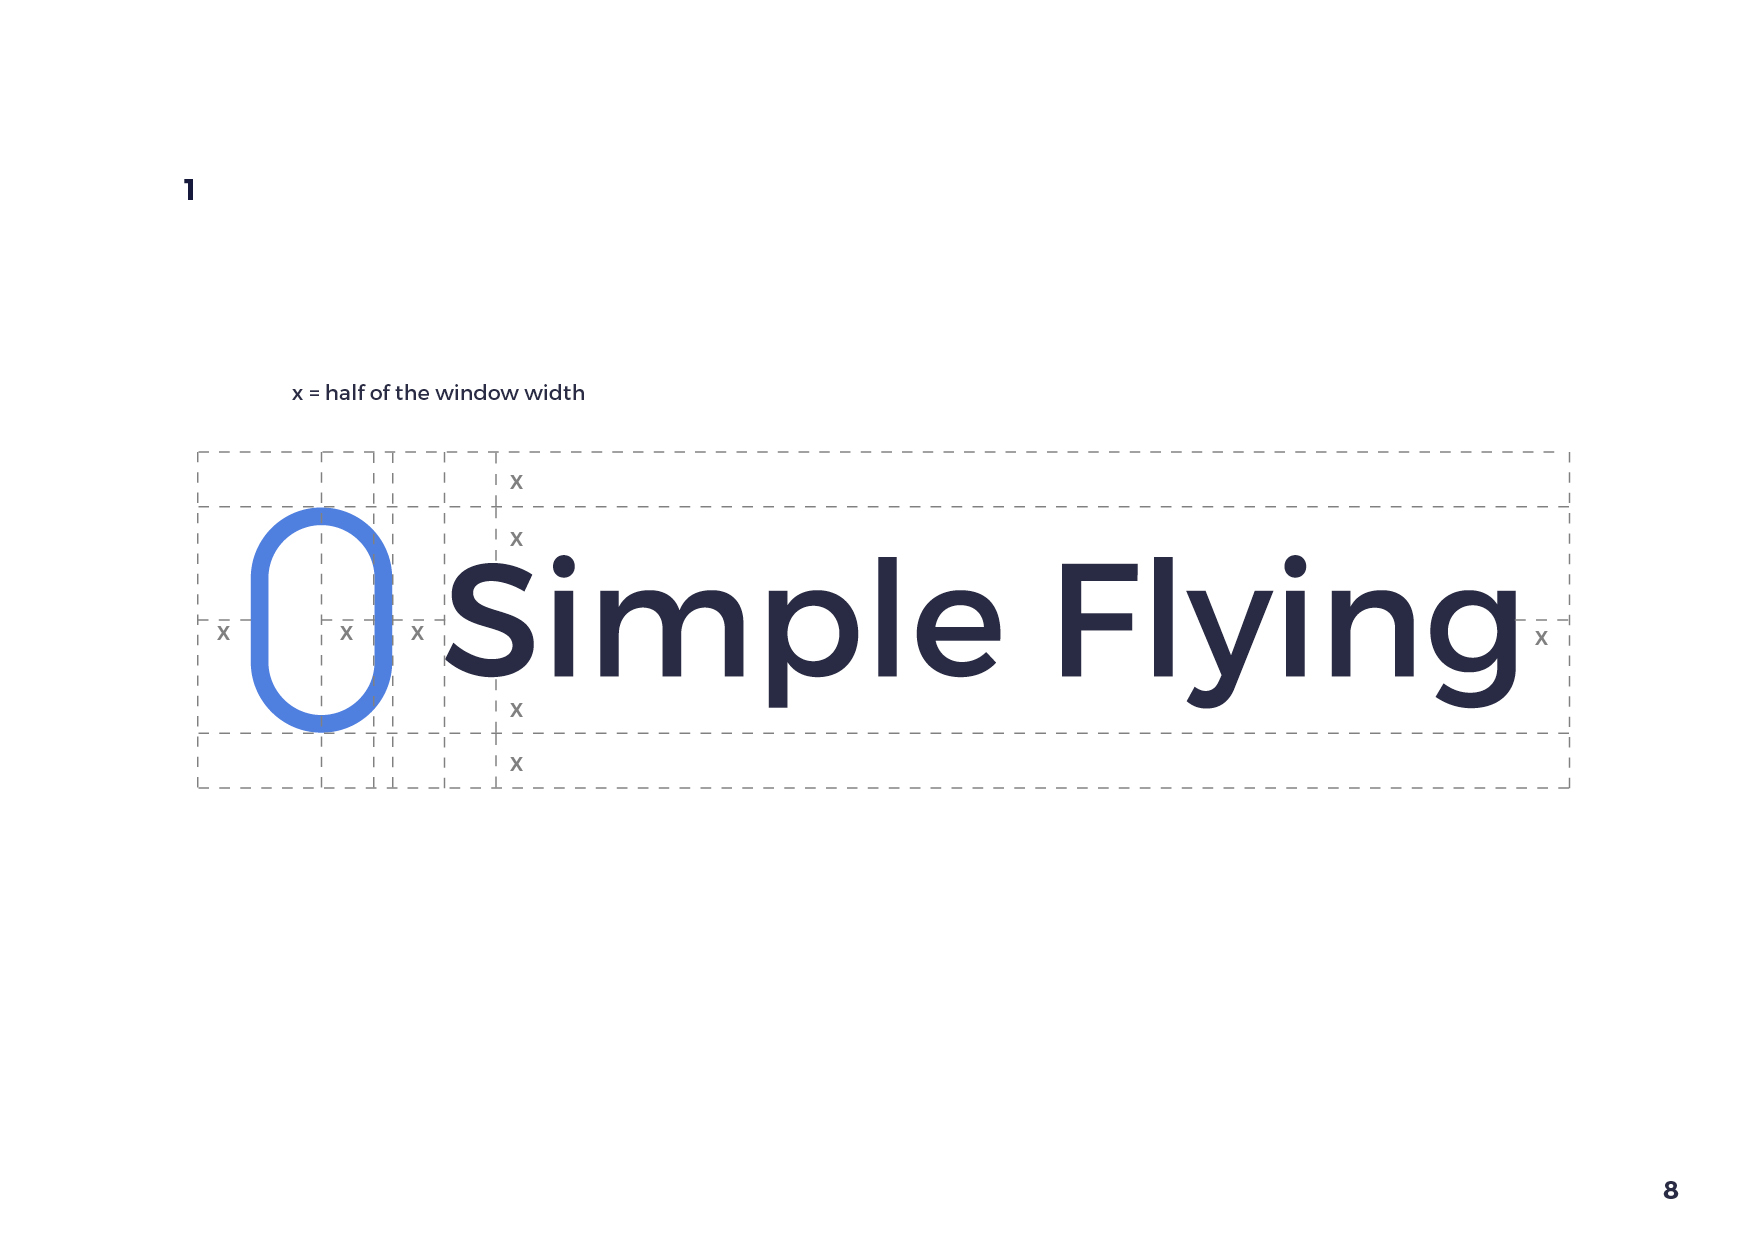 Work-SimpleFLying-ColourStyle-018.jpg